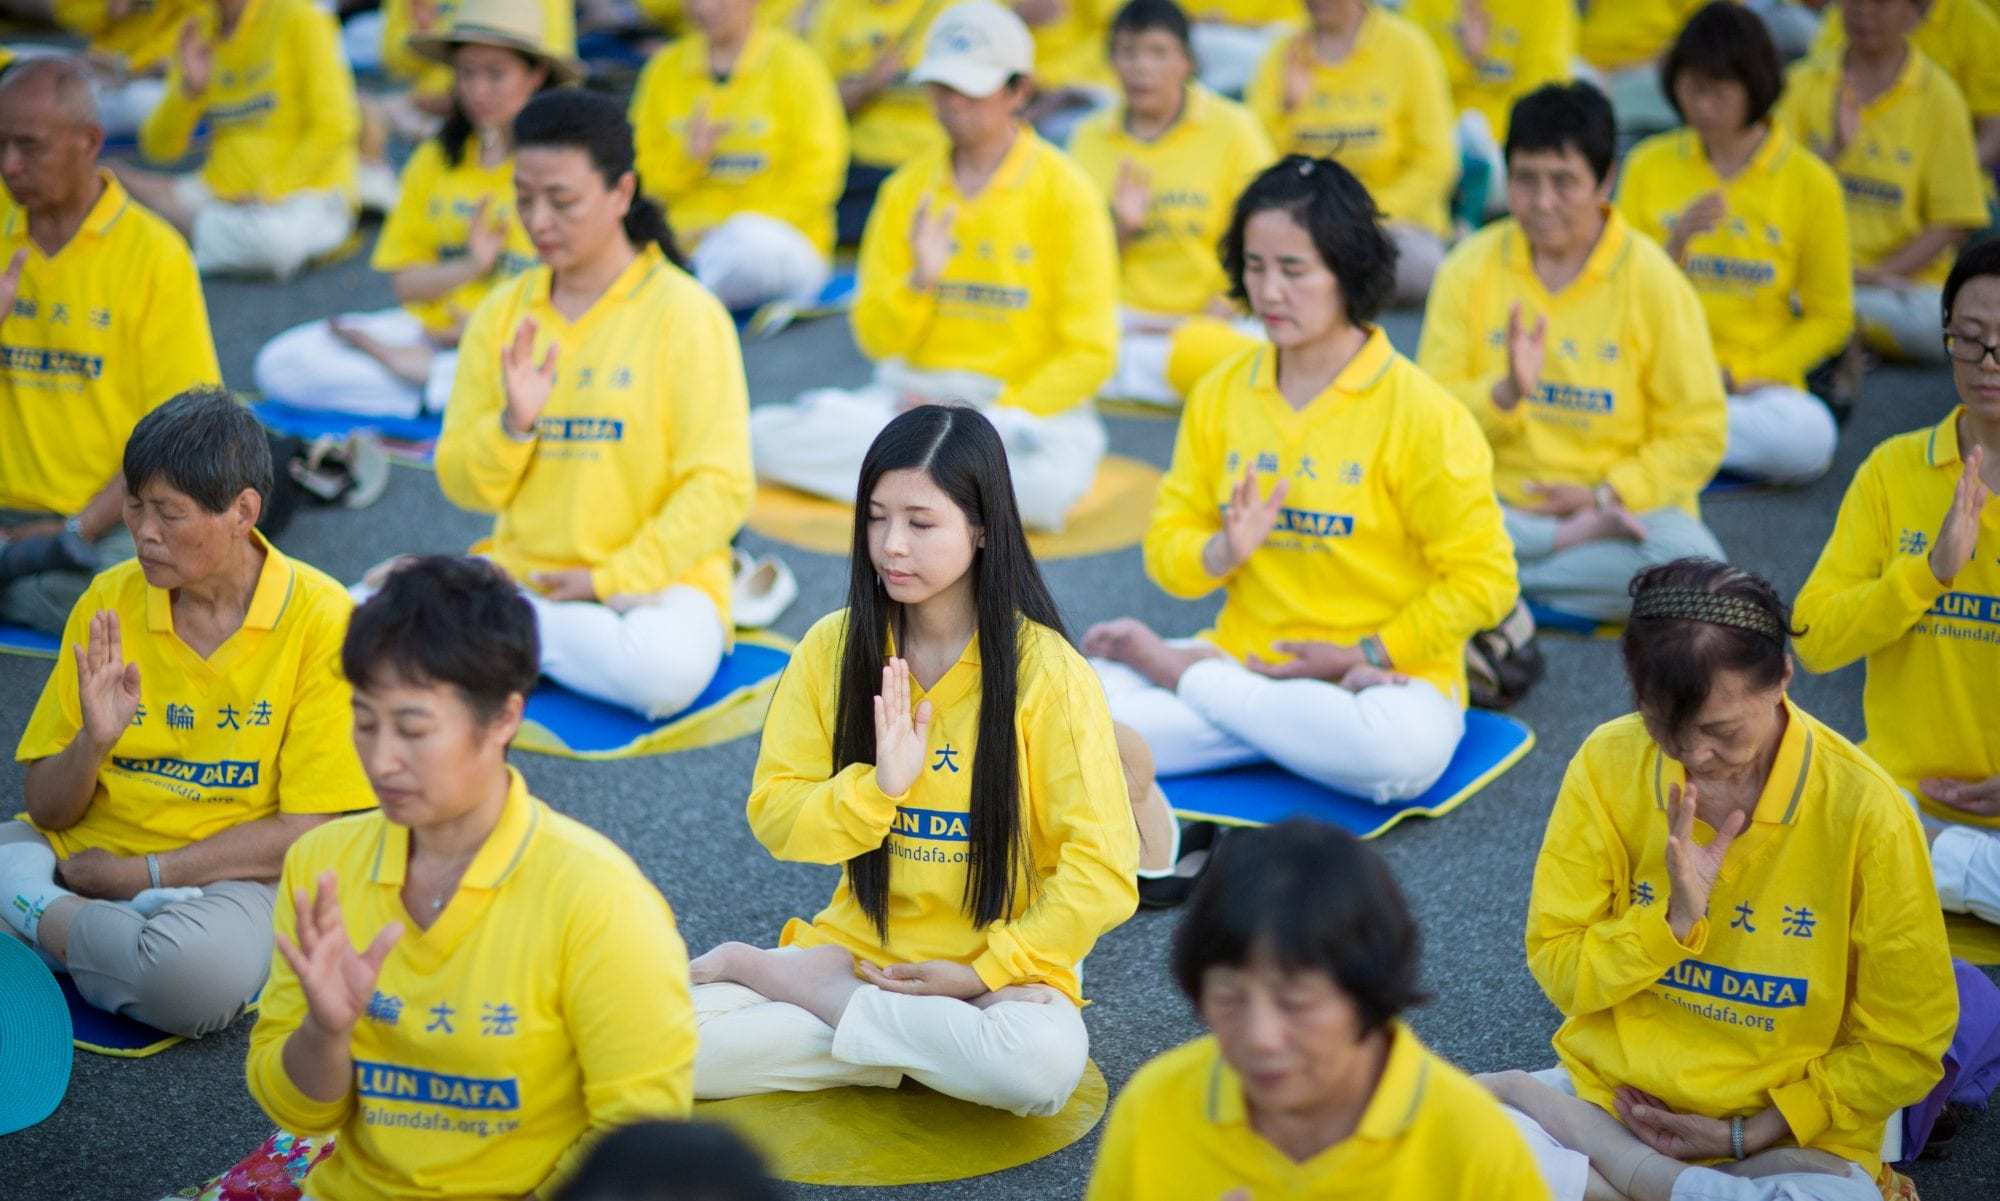 Students for Falun Gong